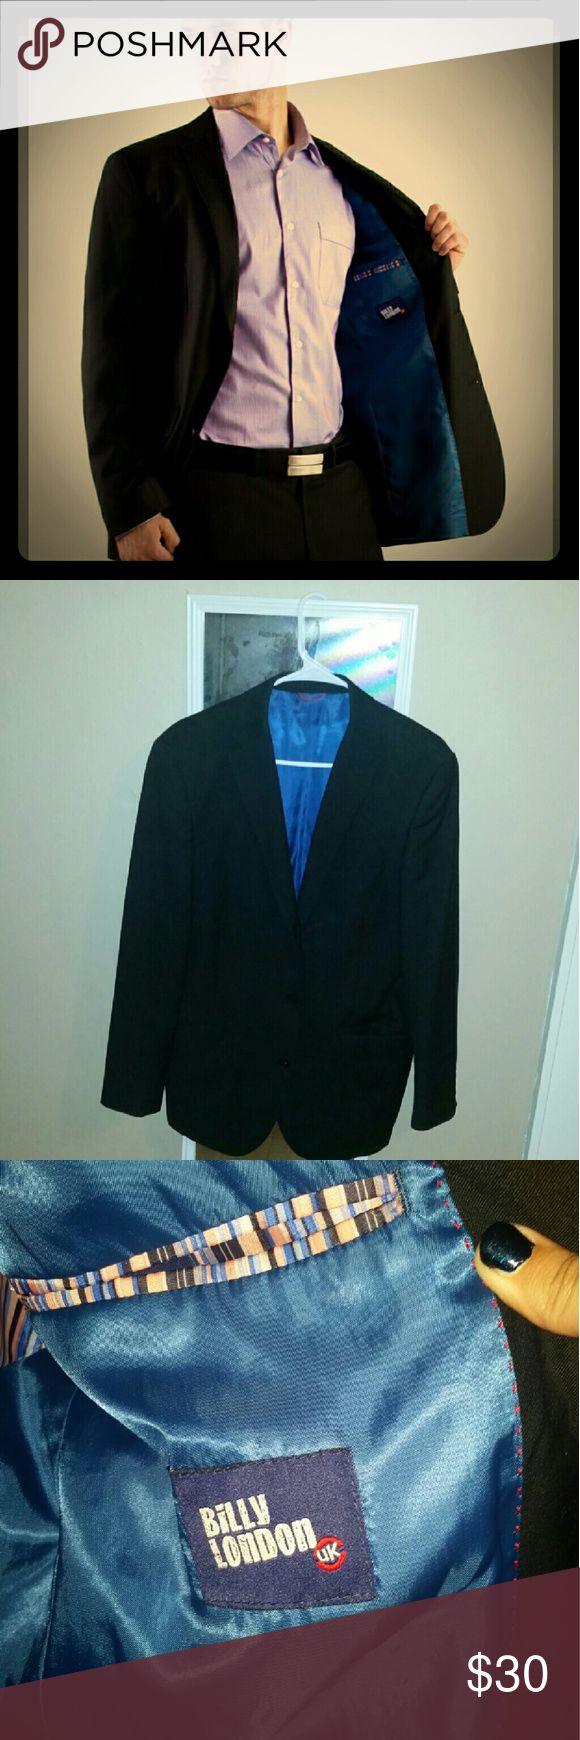 Black Suit Jacket 3 button Black Suit Jacket with blue lining and 2 breast pockets. Size 40R made by Billy London. No wear or tear. Just got too small. Billy London Suits & Blazers Suits